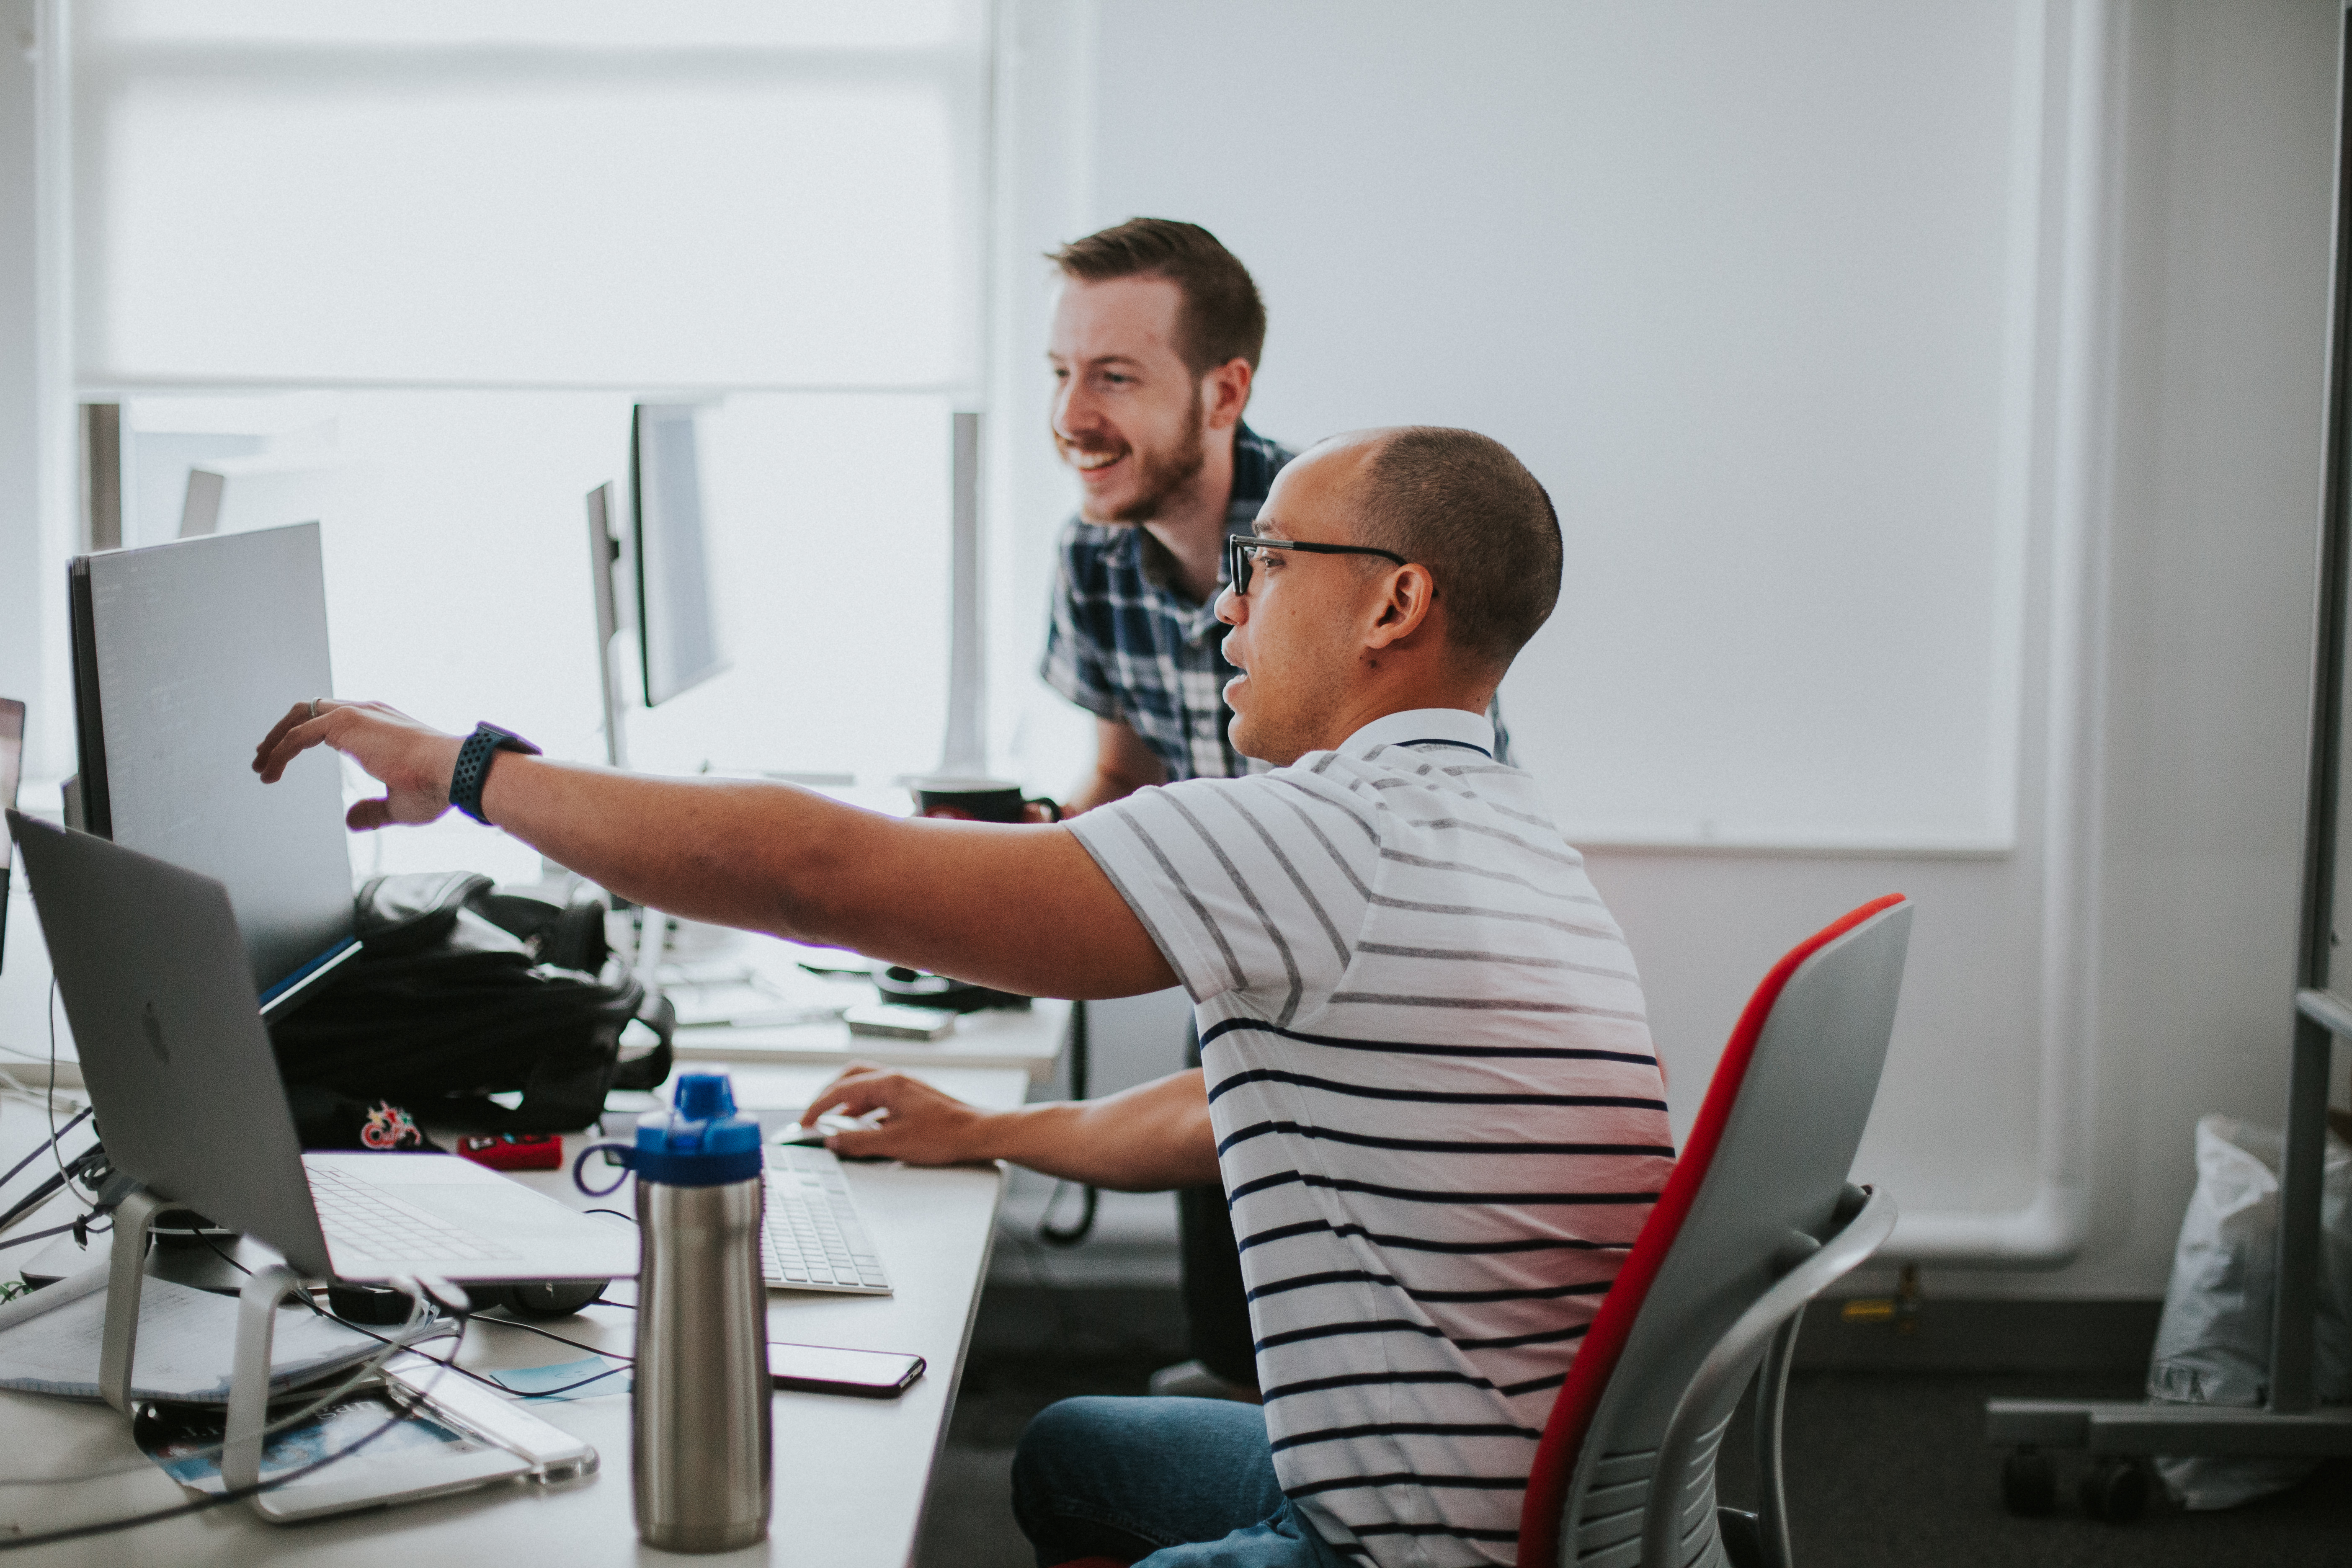 Two developers pair-programming